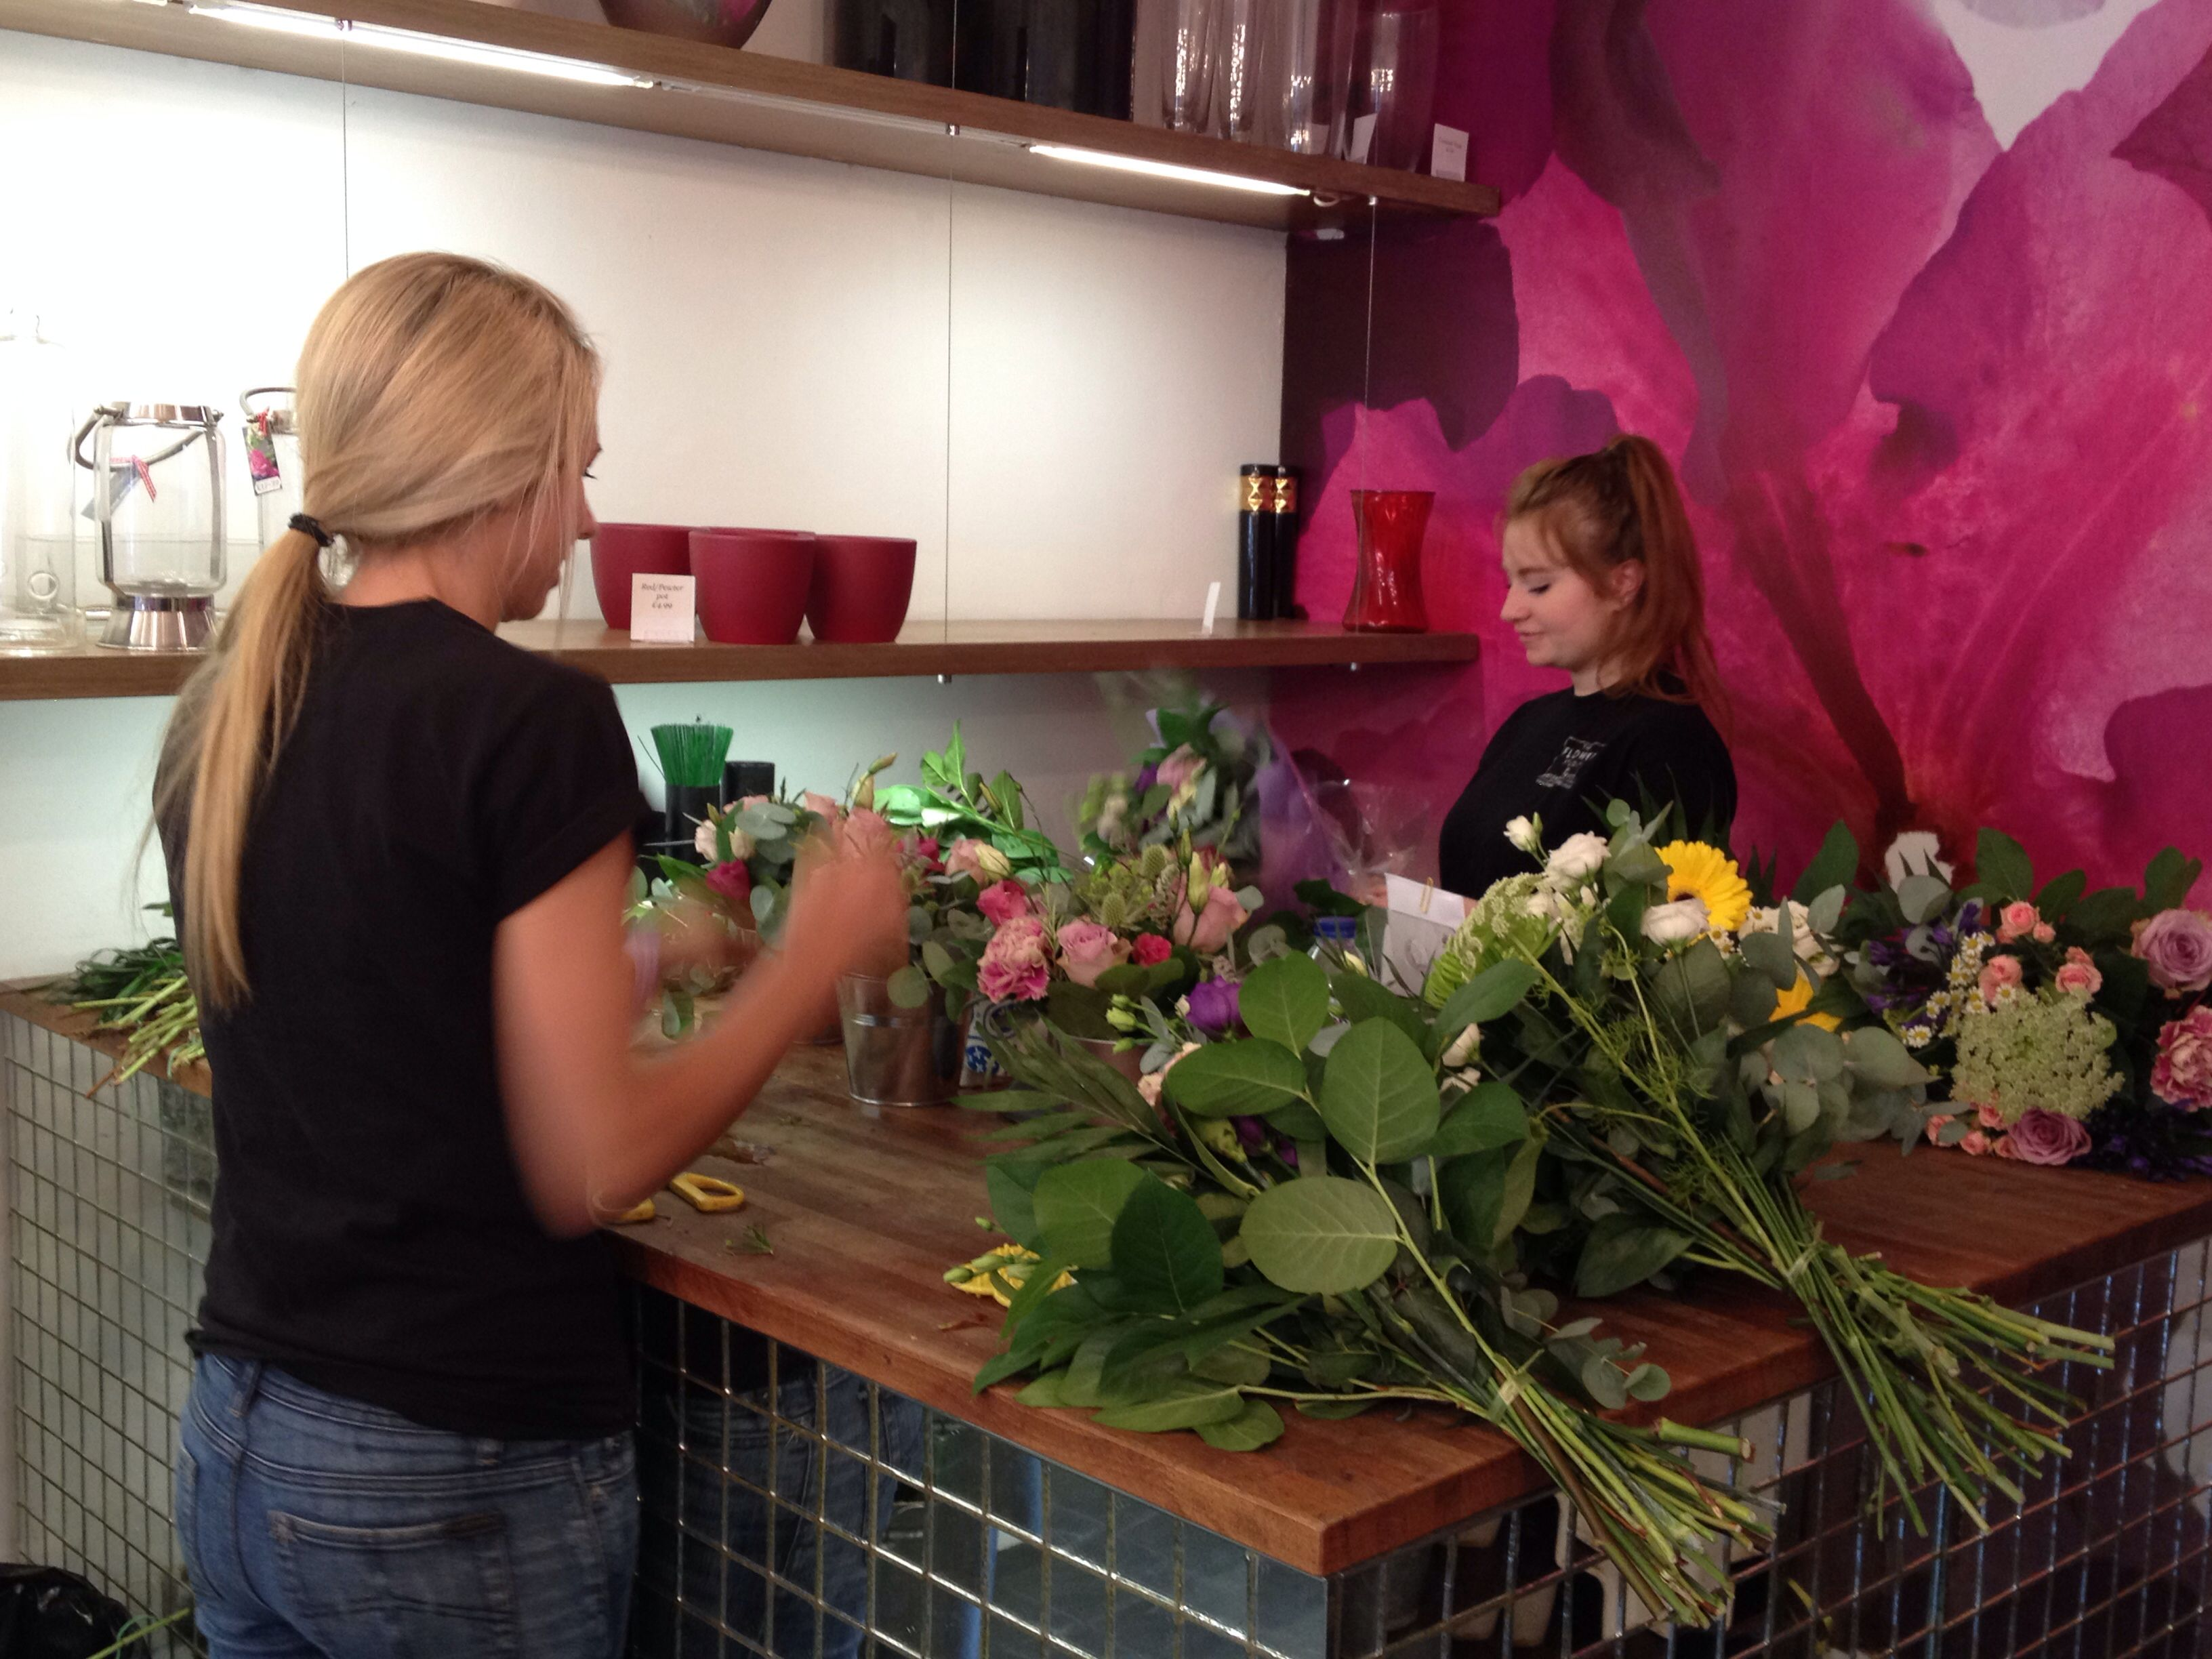 Shop Manager Lisa and florista Nadia working at the floristry table in the shop